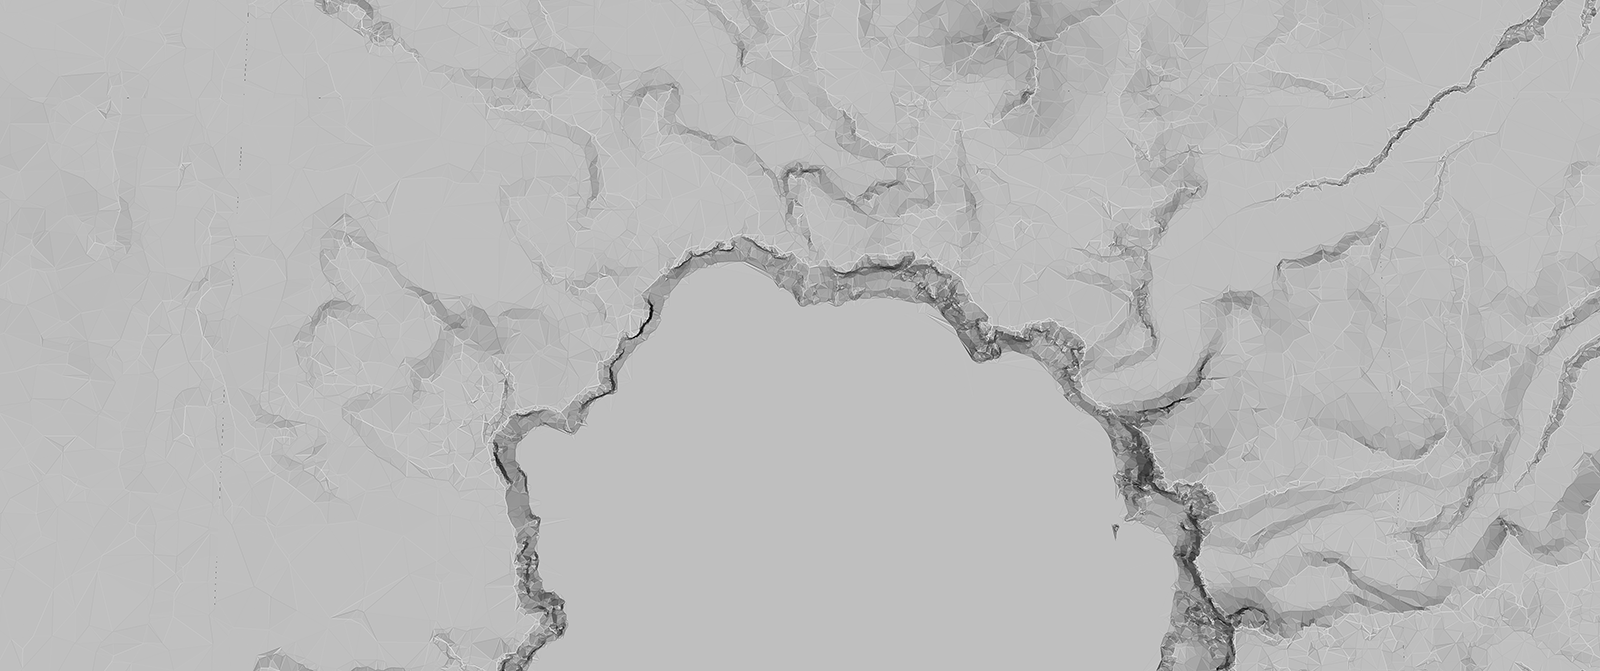 Visualizing Large Scale 3D Terrain with Open Source Tools - HERE